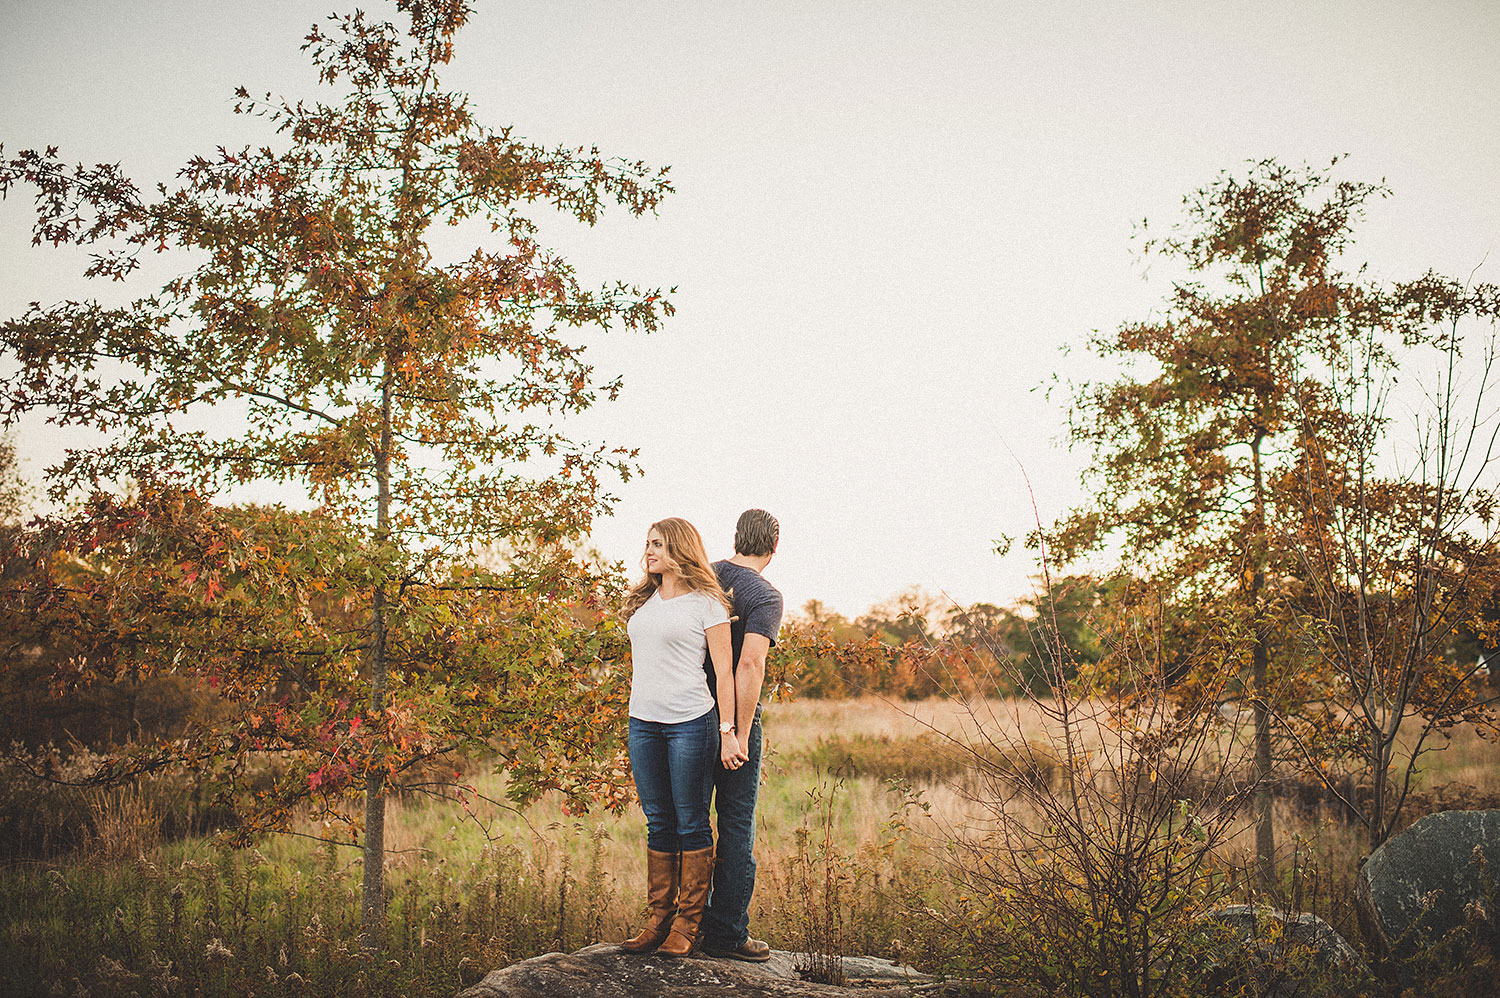 pat-robinson-photography-wilmington-engagement-session-18.jpg